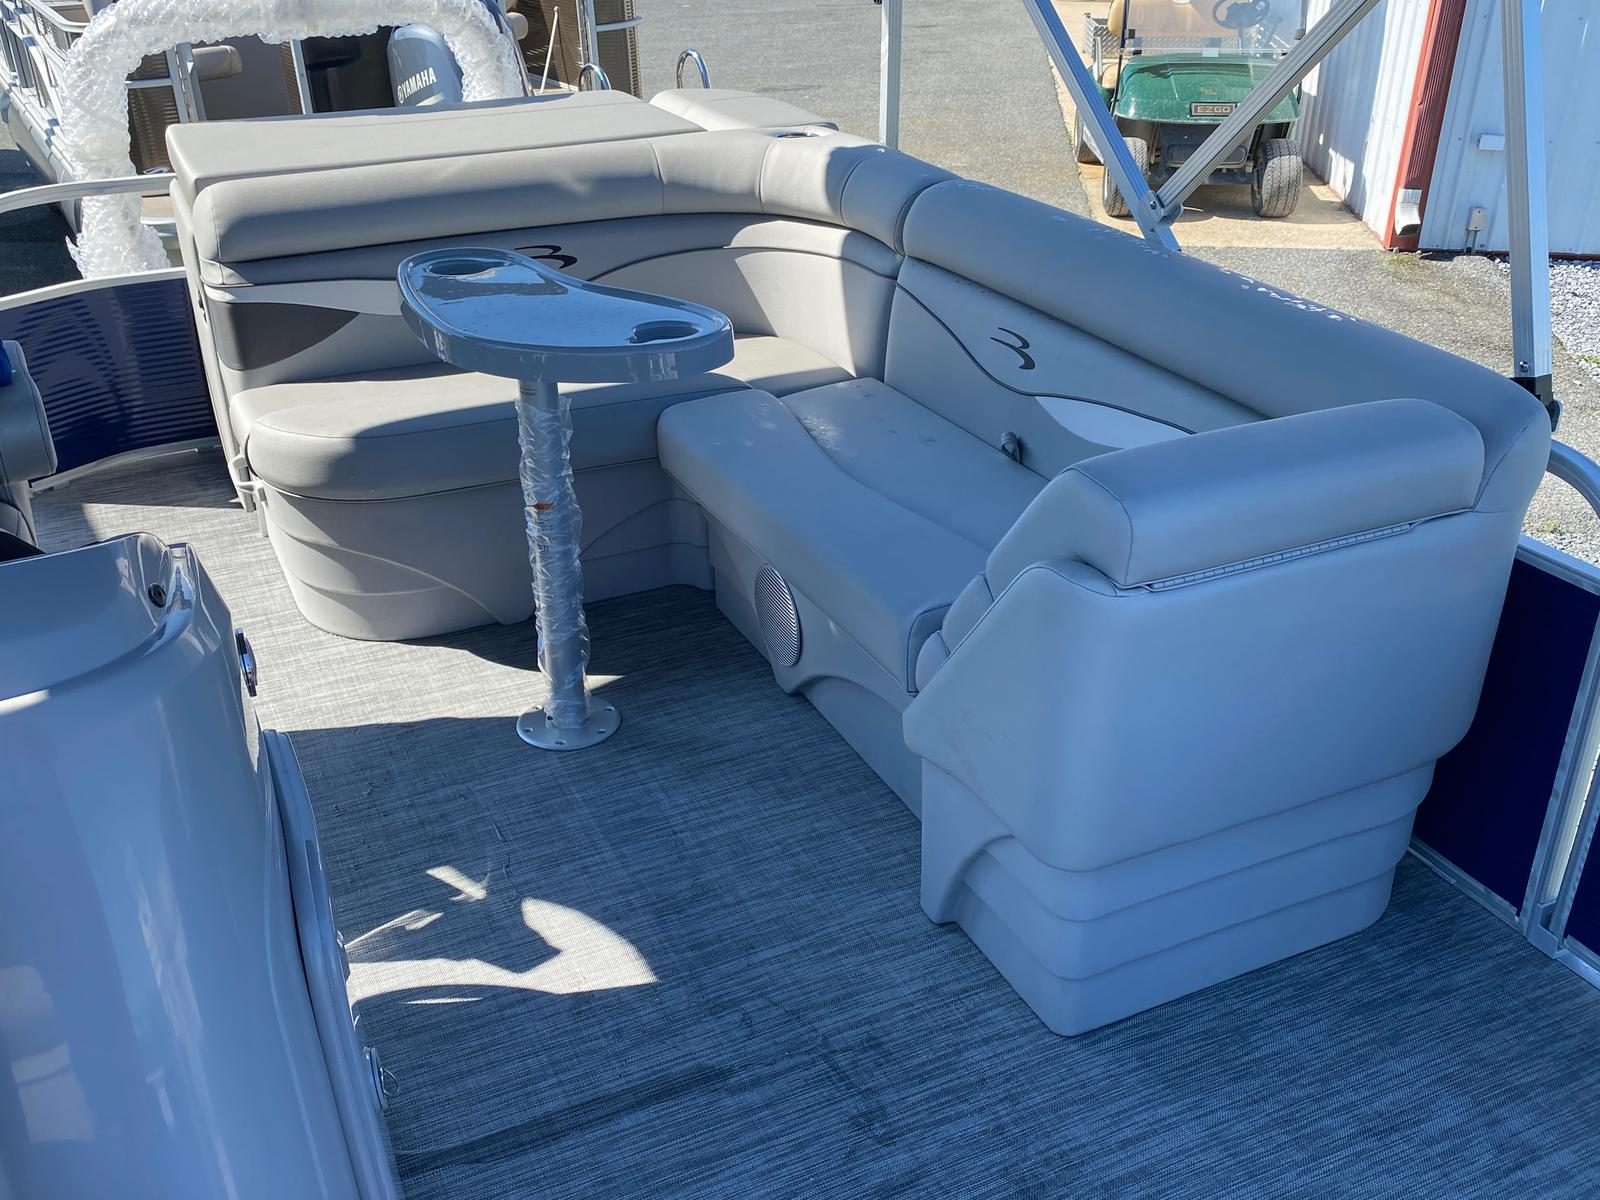 2021 Bennington boat for sale, model of the boat is 20 SVL & Image # 3 of 9